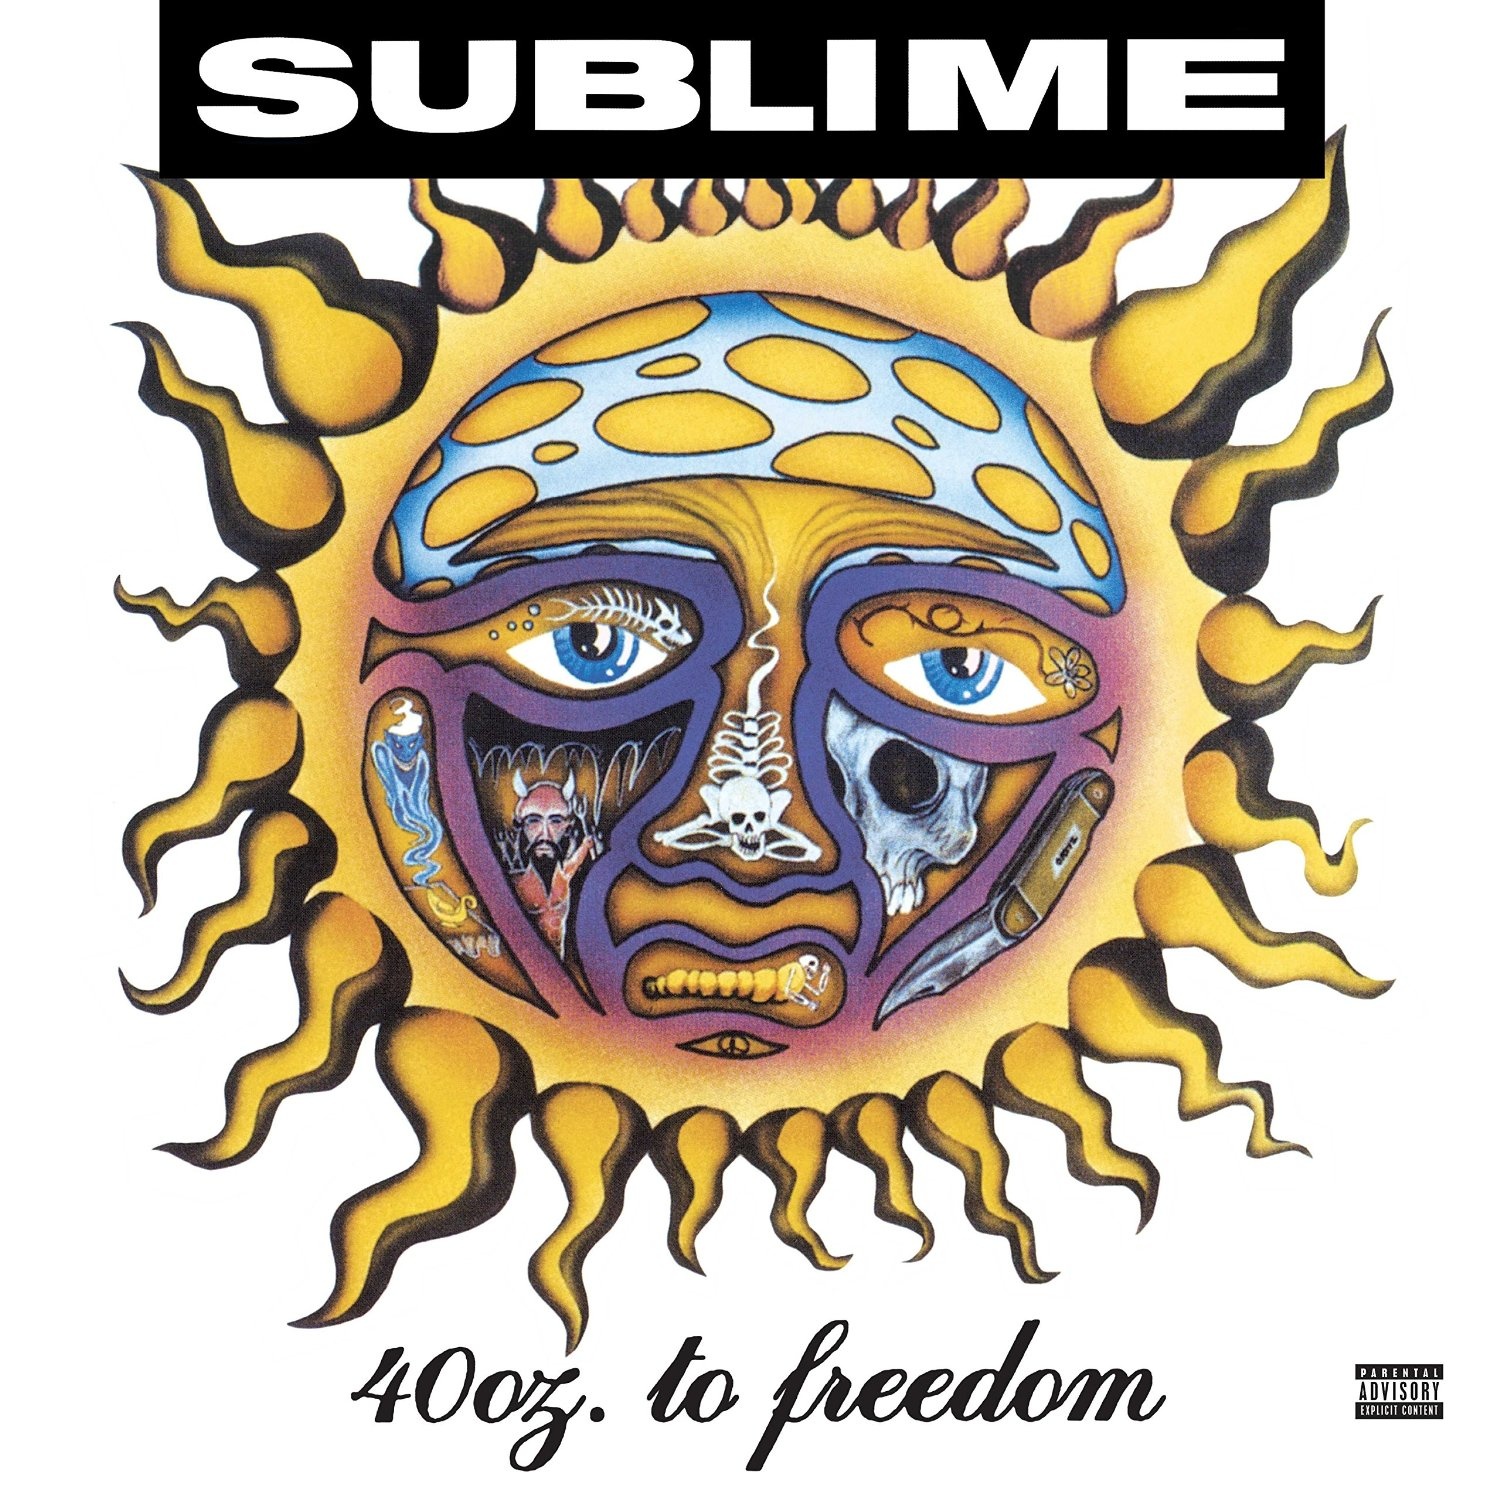 Sublime - 40oz. To Freedom [Limited Edition 2 LP][Lenticular]